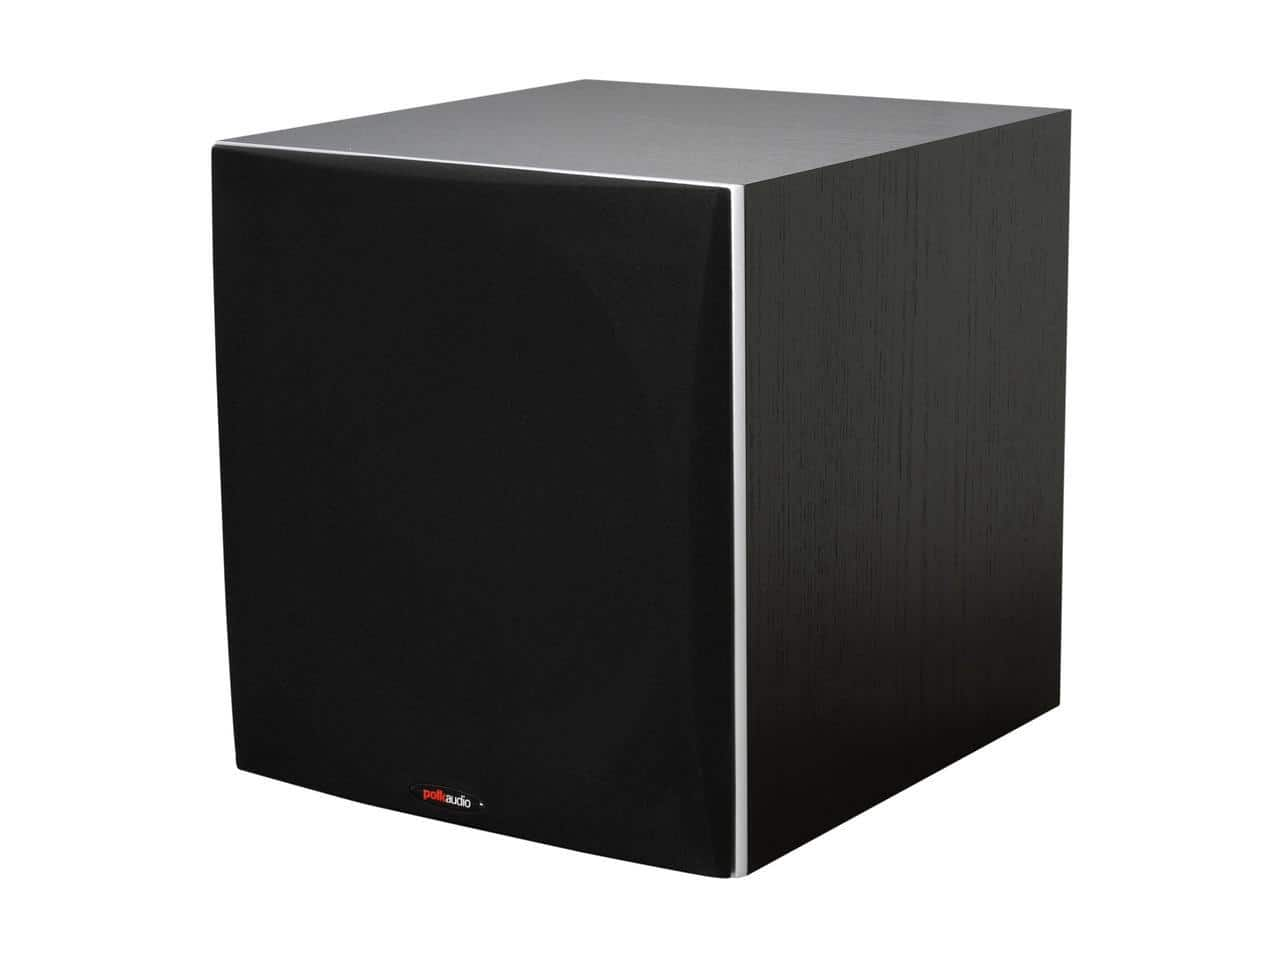 """Polk Audio PSW505 12"""" Powered 300W Subwoofer (Single) for $159.99 AC & More + Free Shipping @ Newegg.com"""